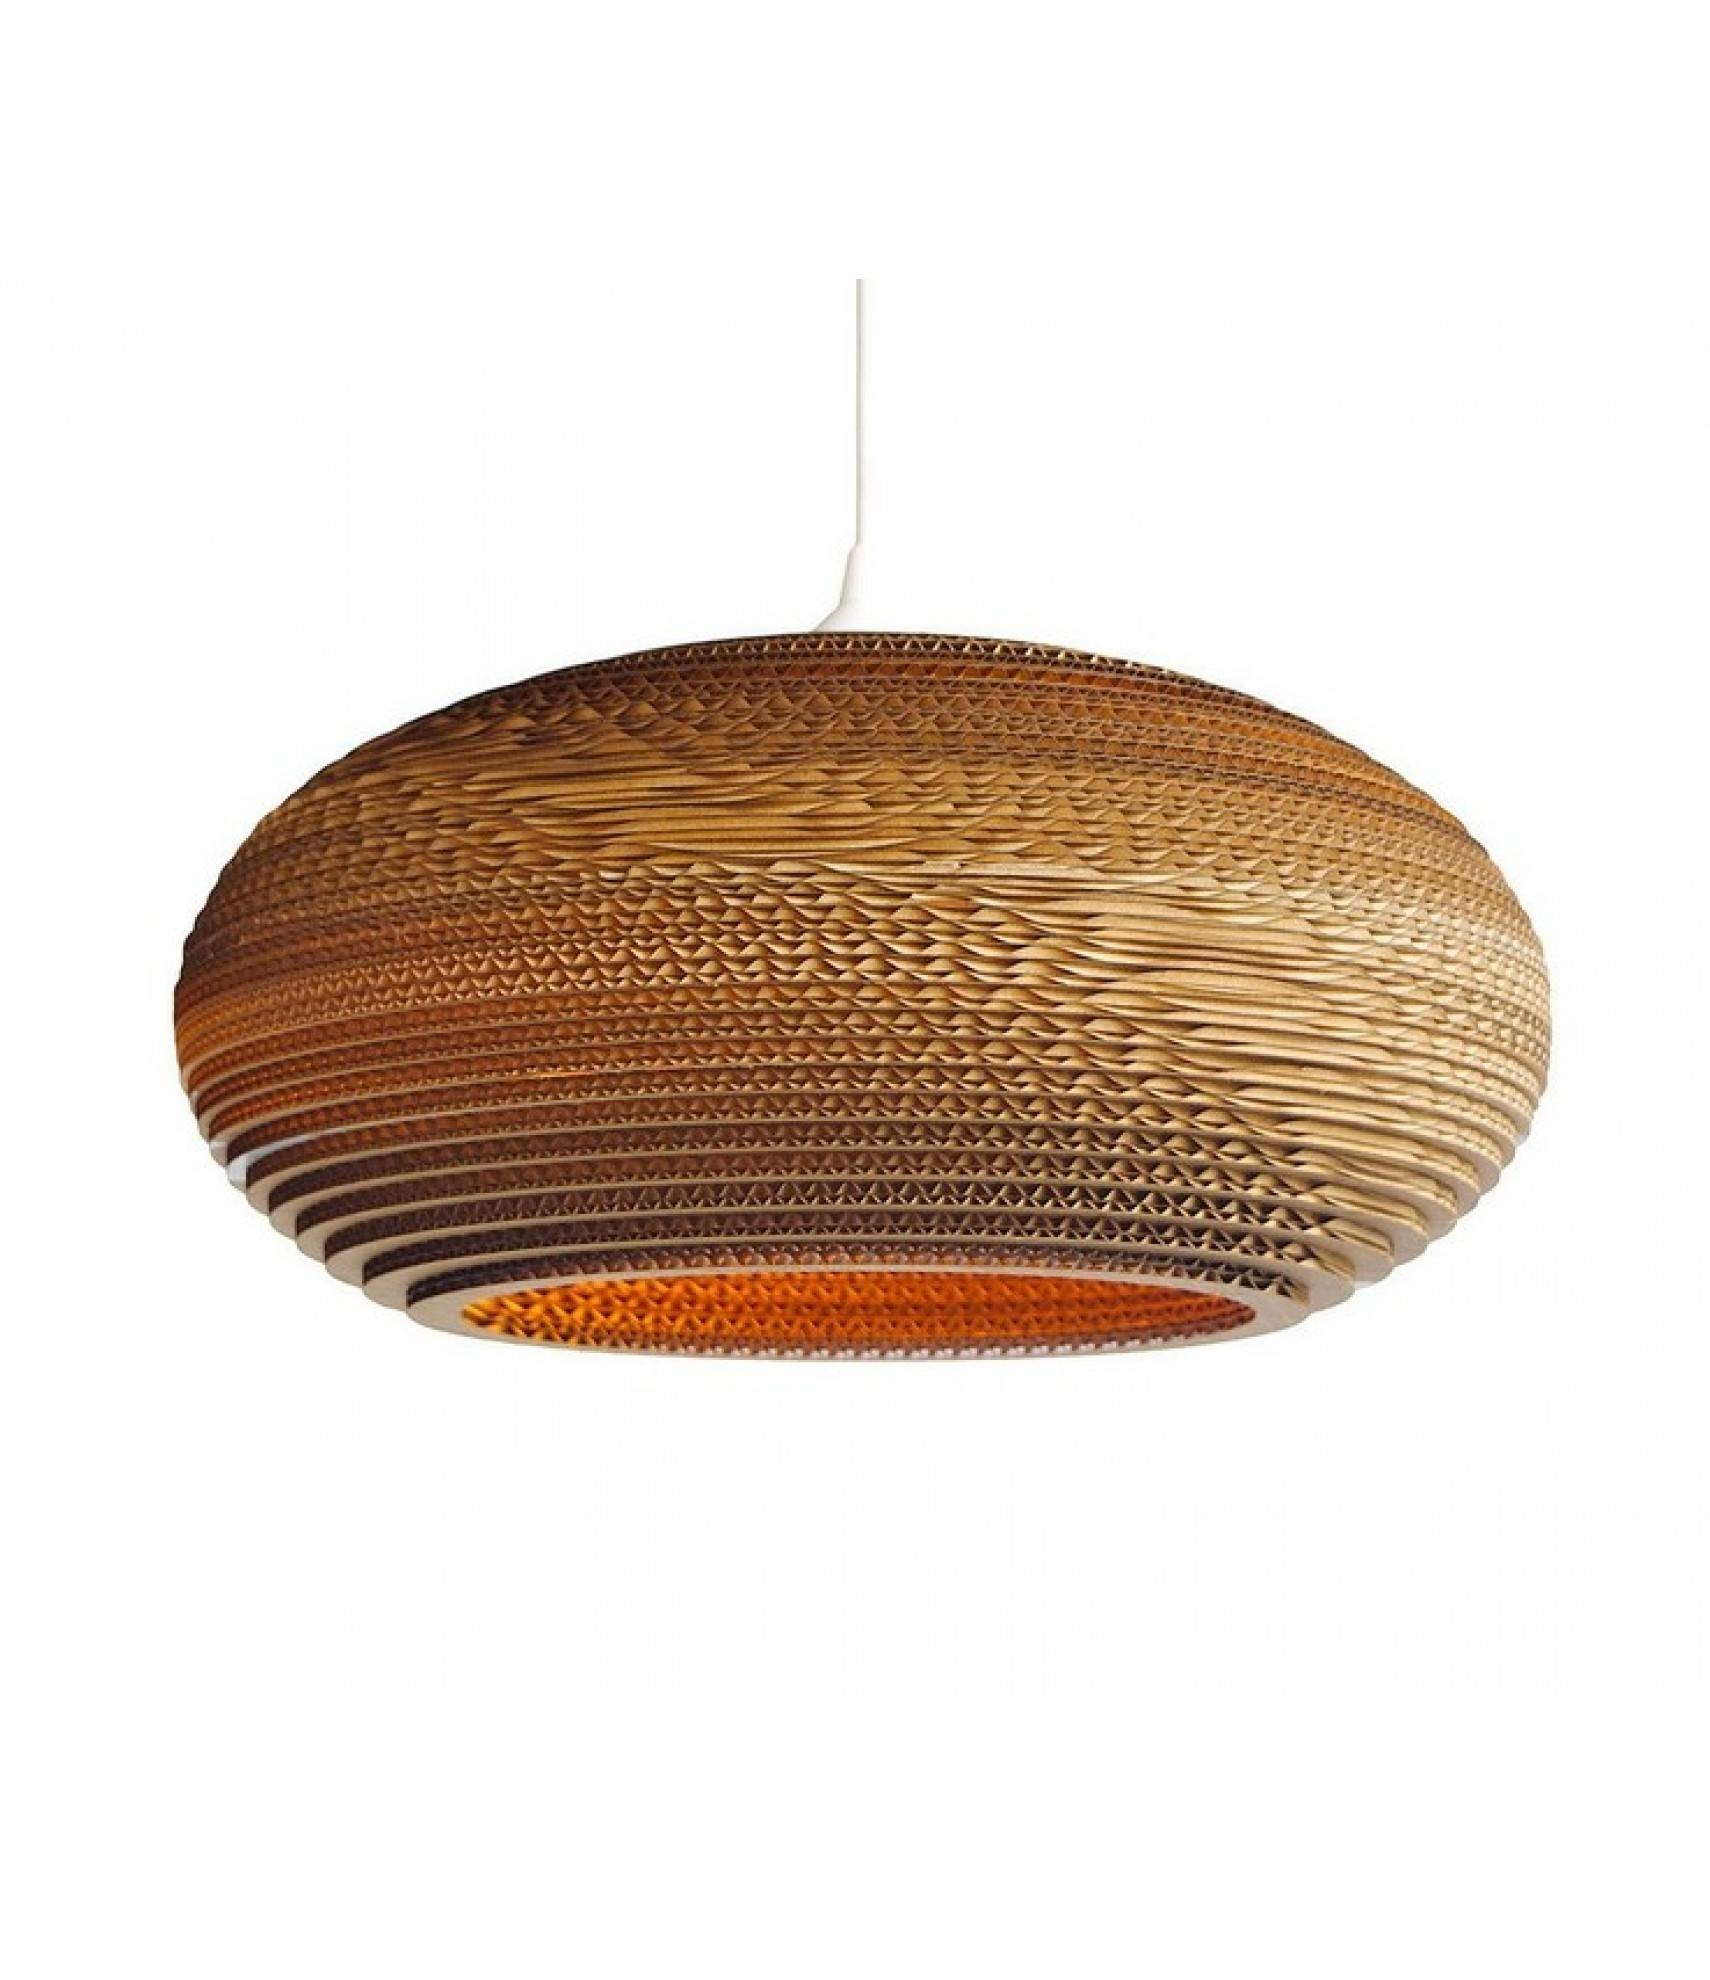 Lucretia Lighting | Tailored Designer Lighting Solutions | Replica With Regard To Recycled Pendant Lights (View 13 of 15)